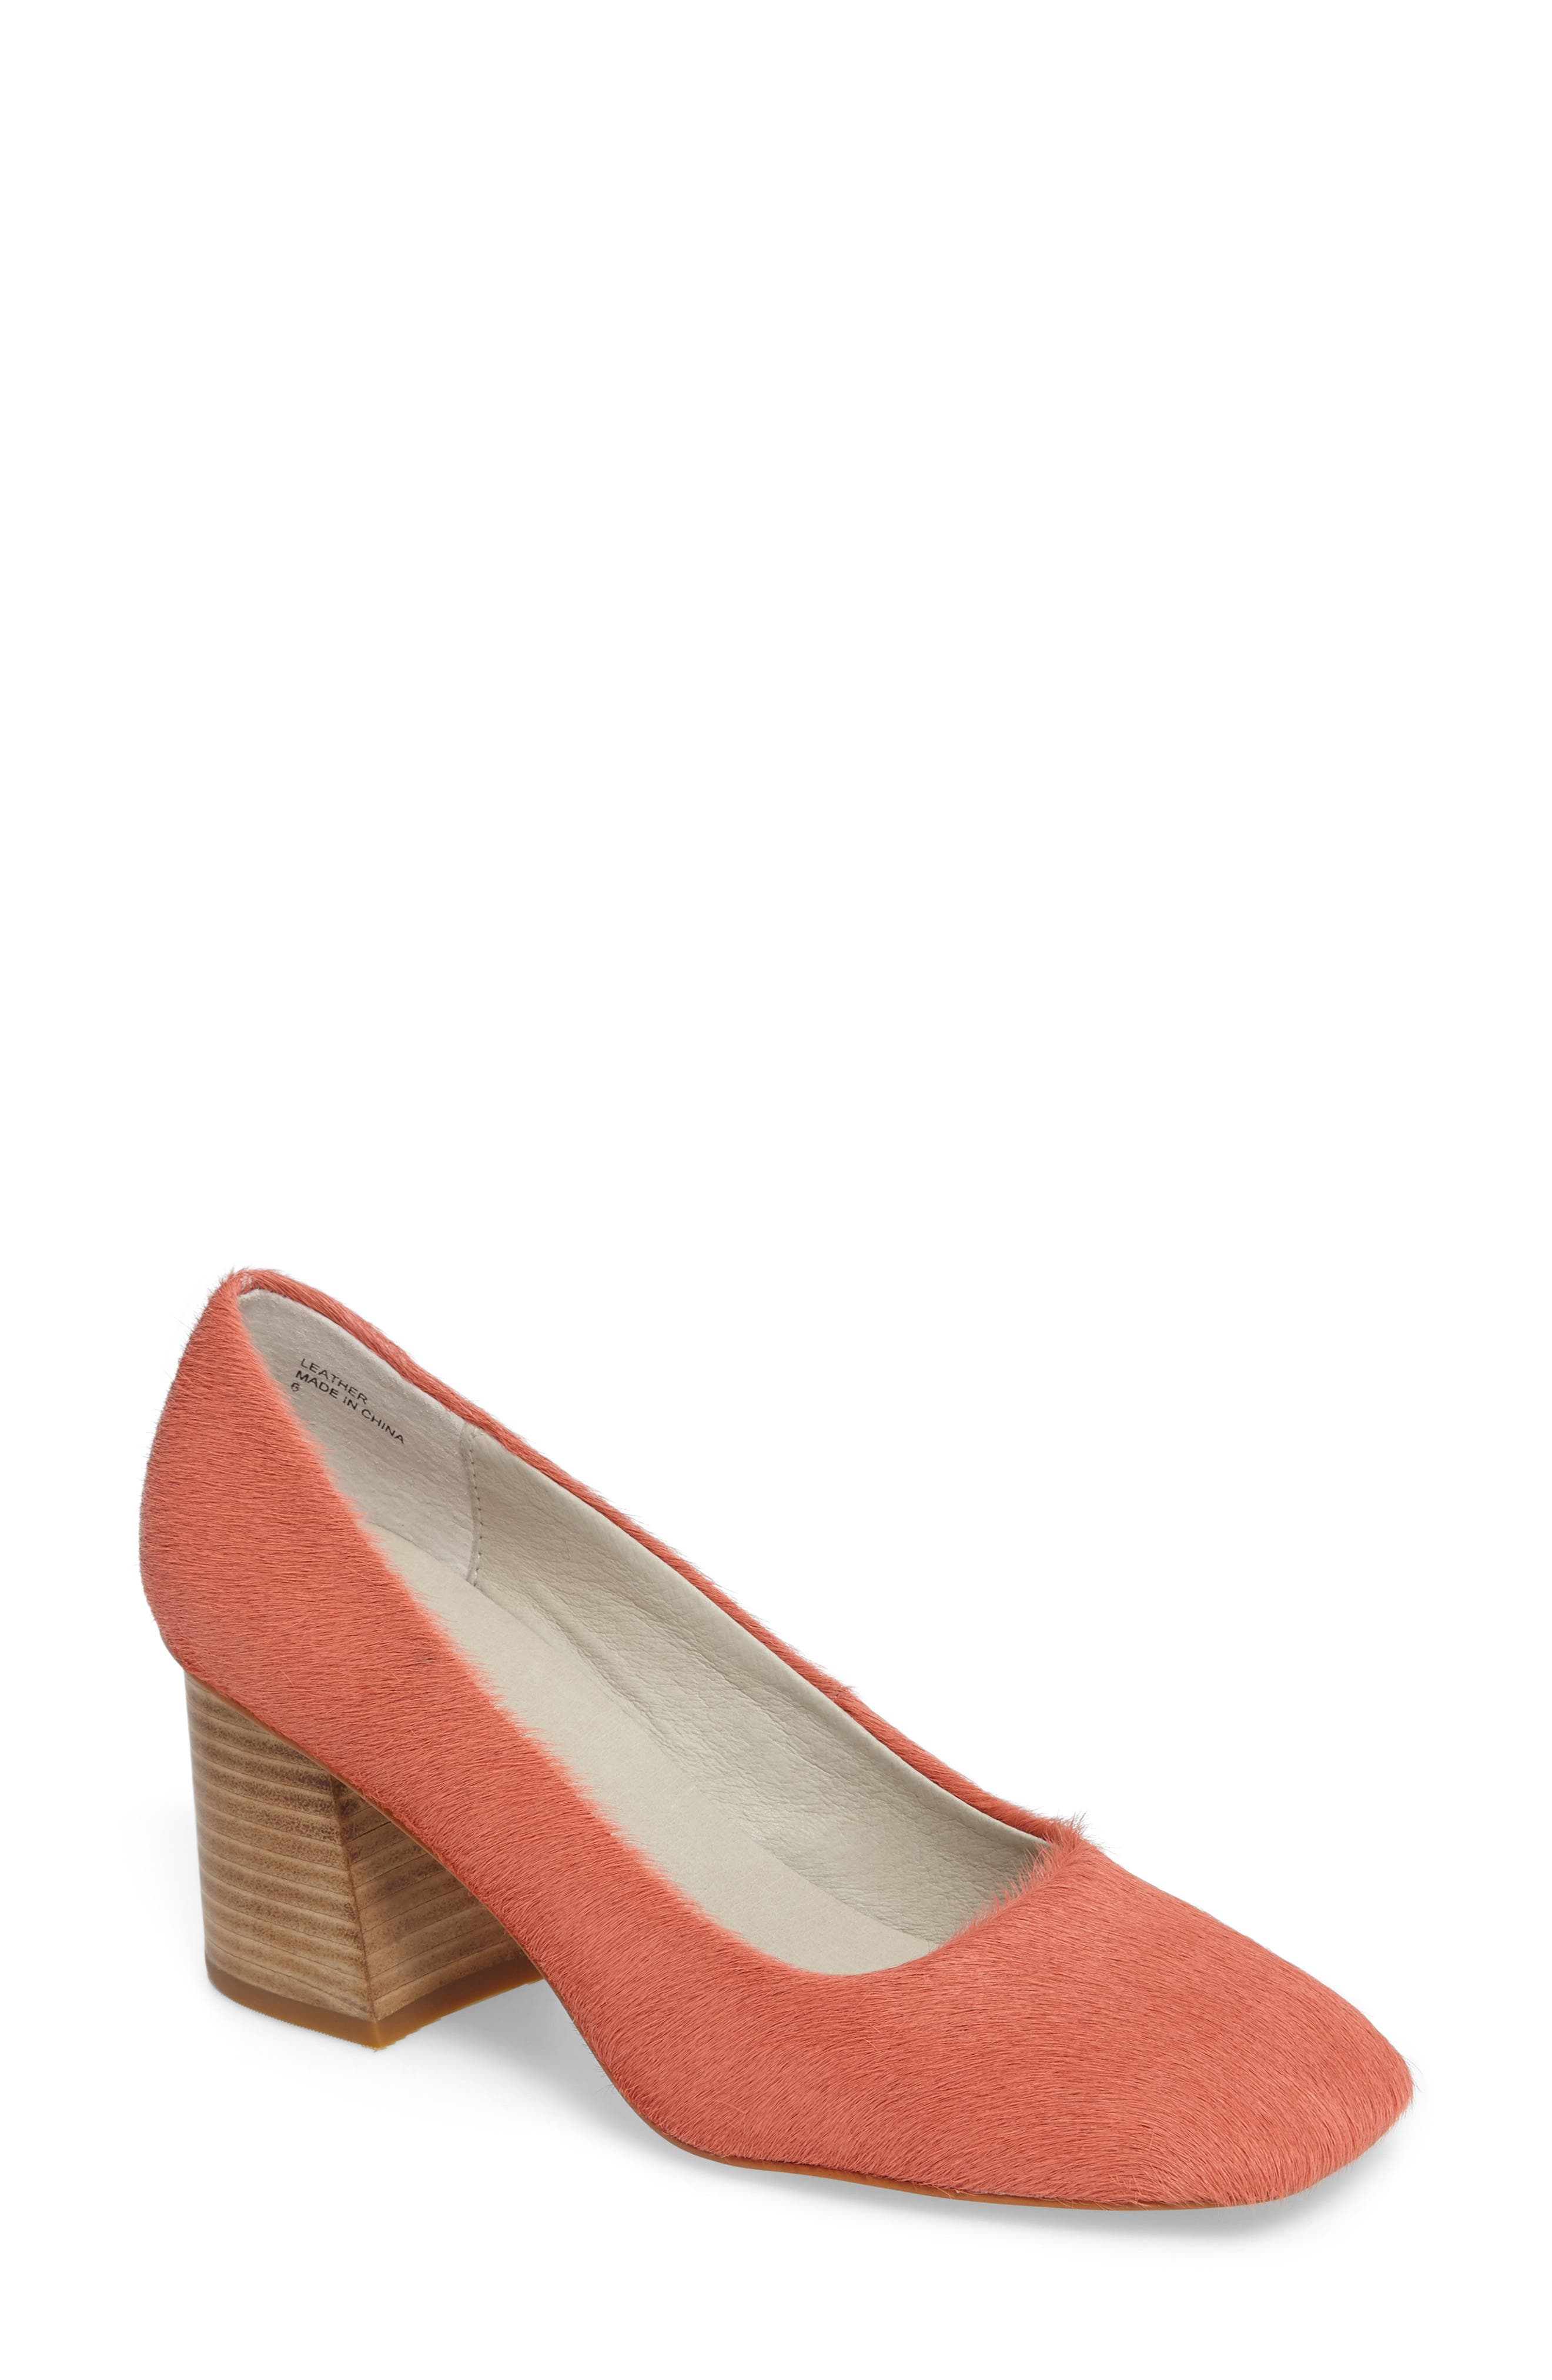 Grey City Shay Genuine Calf Hair Pump (Women)